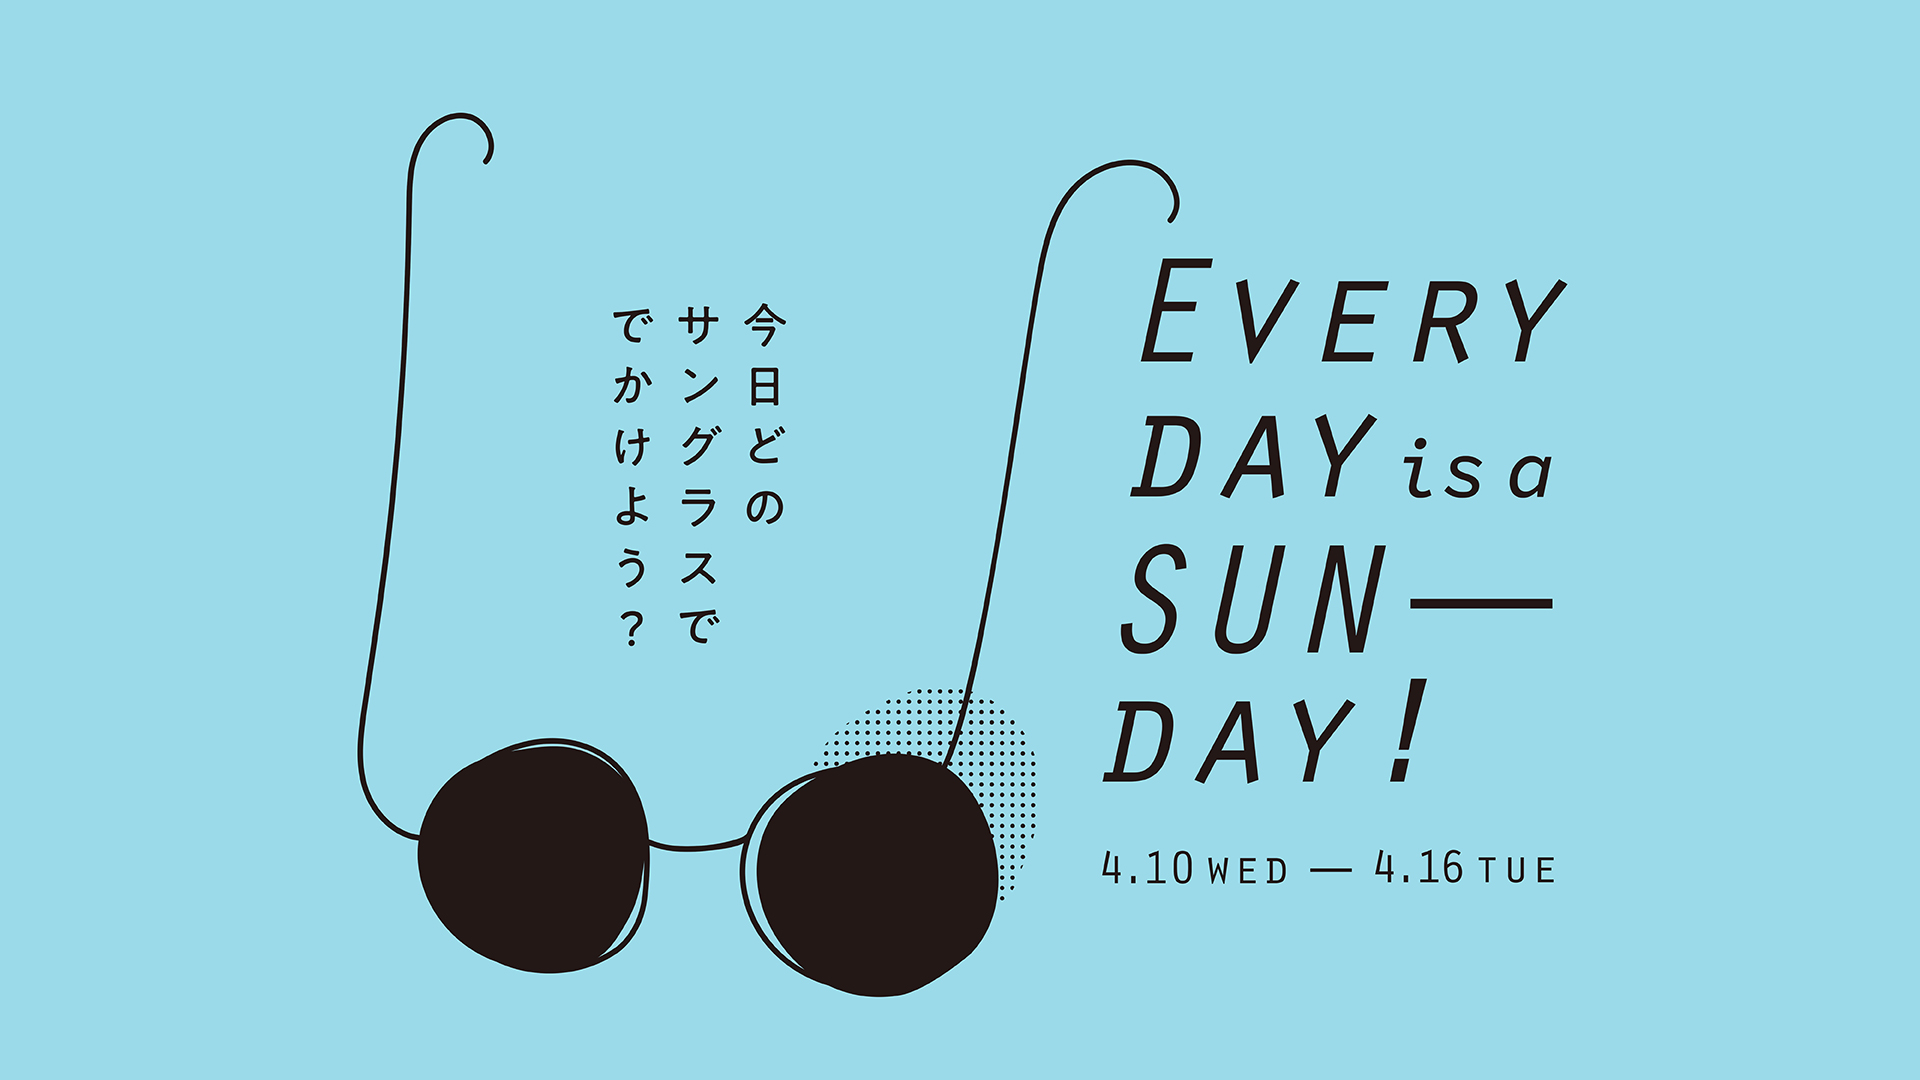 Everyday is a SUN-day!